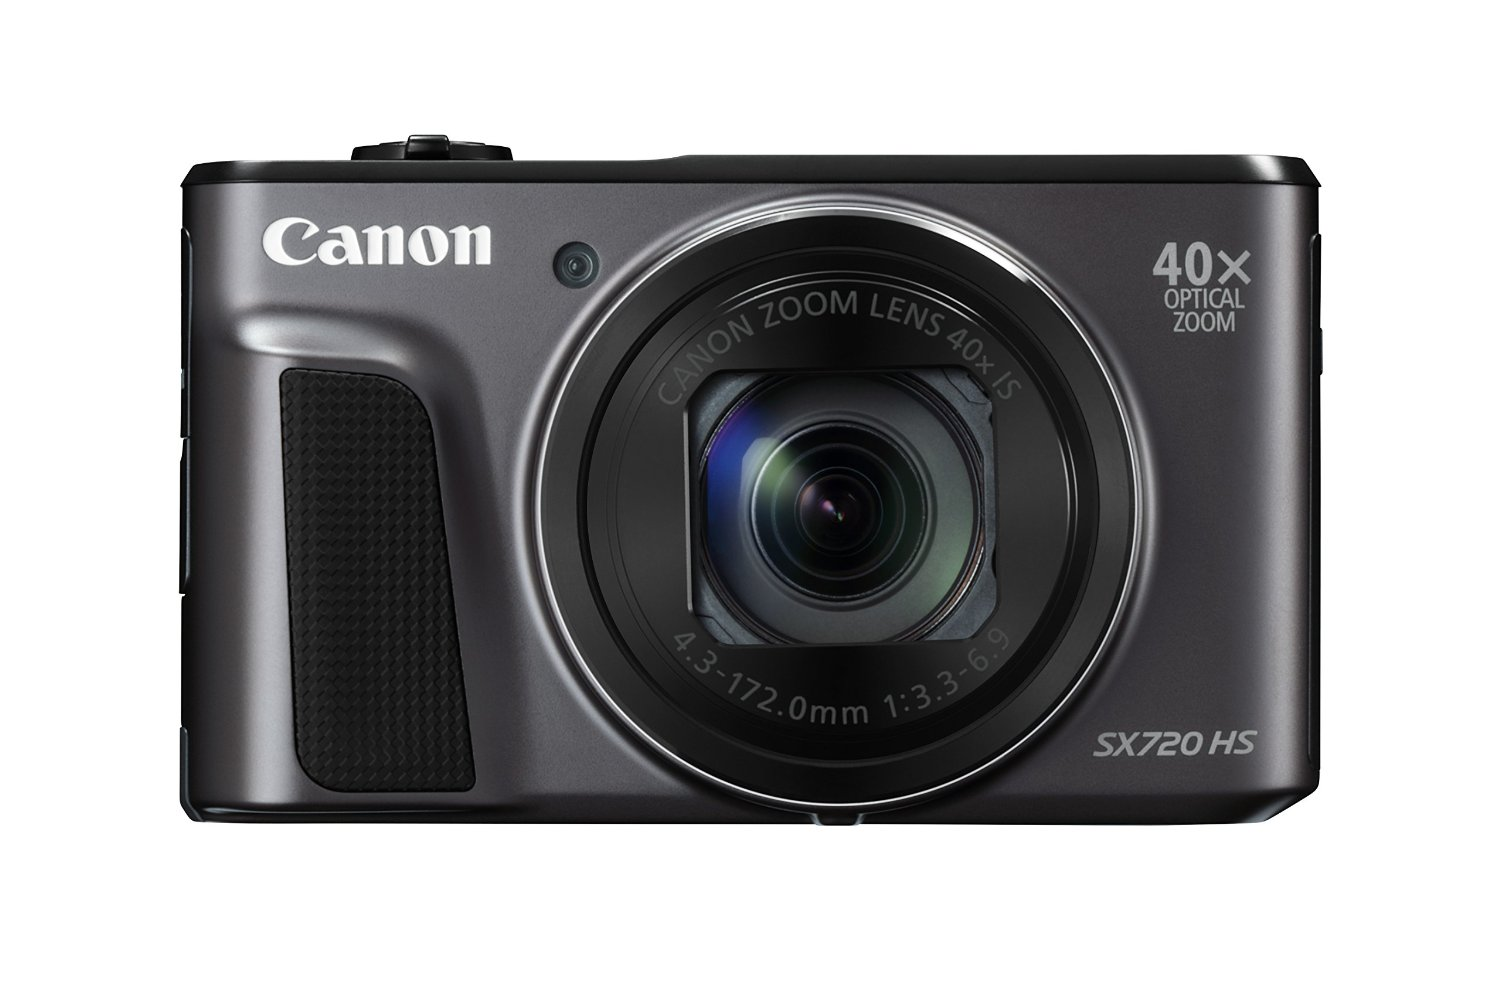 Canon PowerShot Point and Shoot Camera - 40 Optical Zoom, 20.3 MP CMOS Sensor & Built-in Wi-Fi